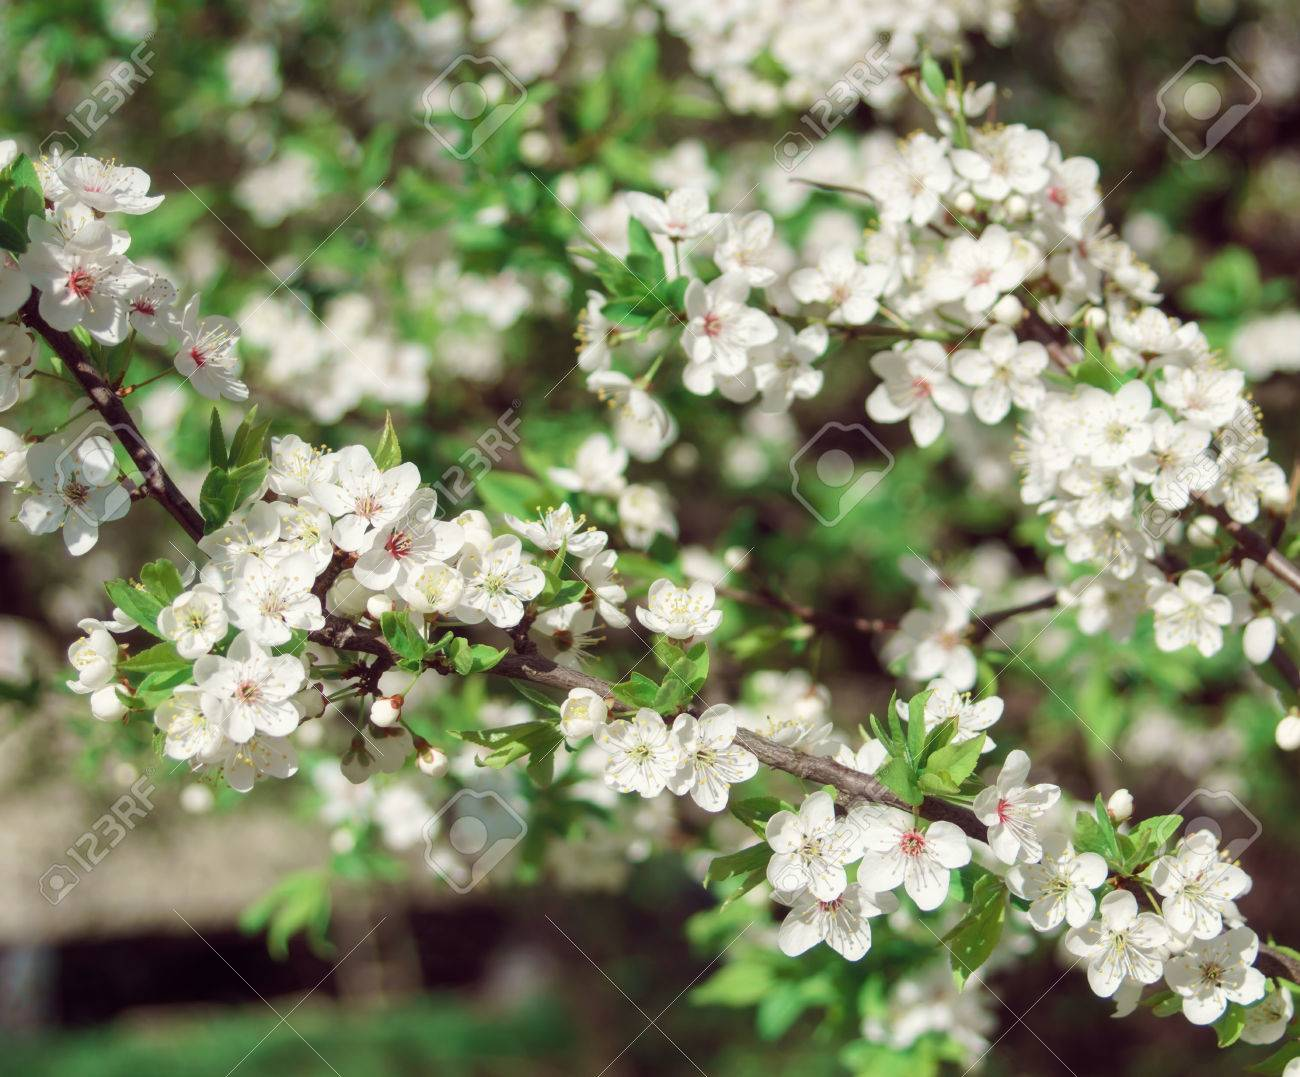 Blooming Nature At Sunny Day Flowering Tree With White Flowers